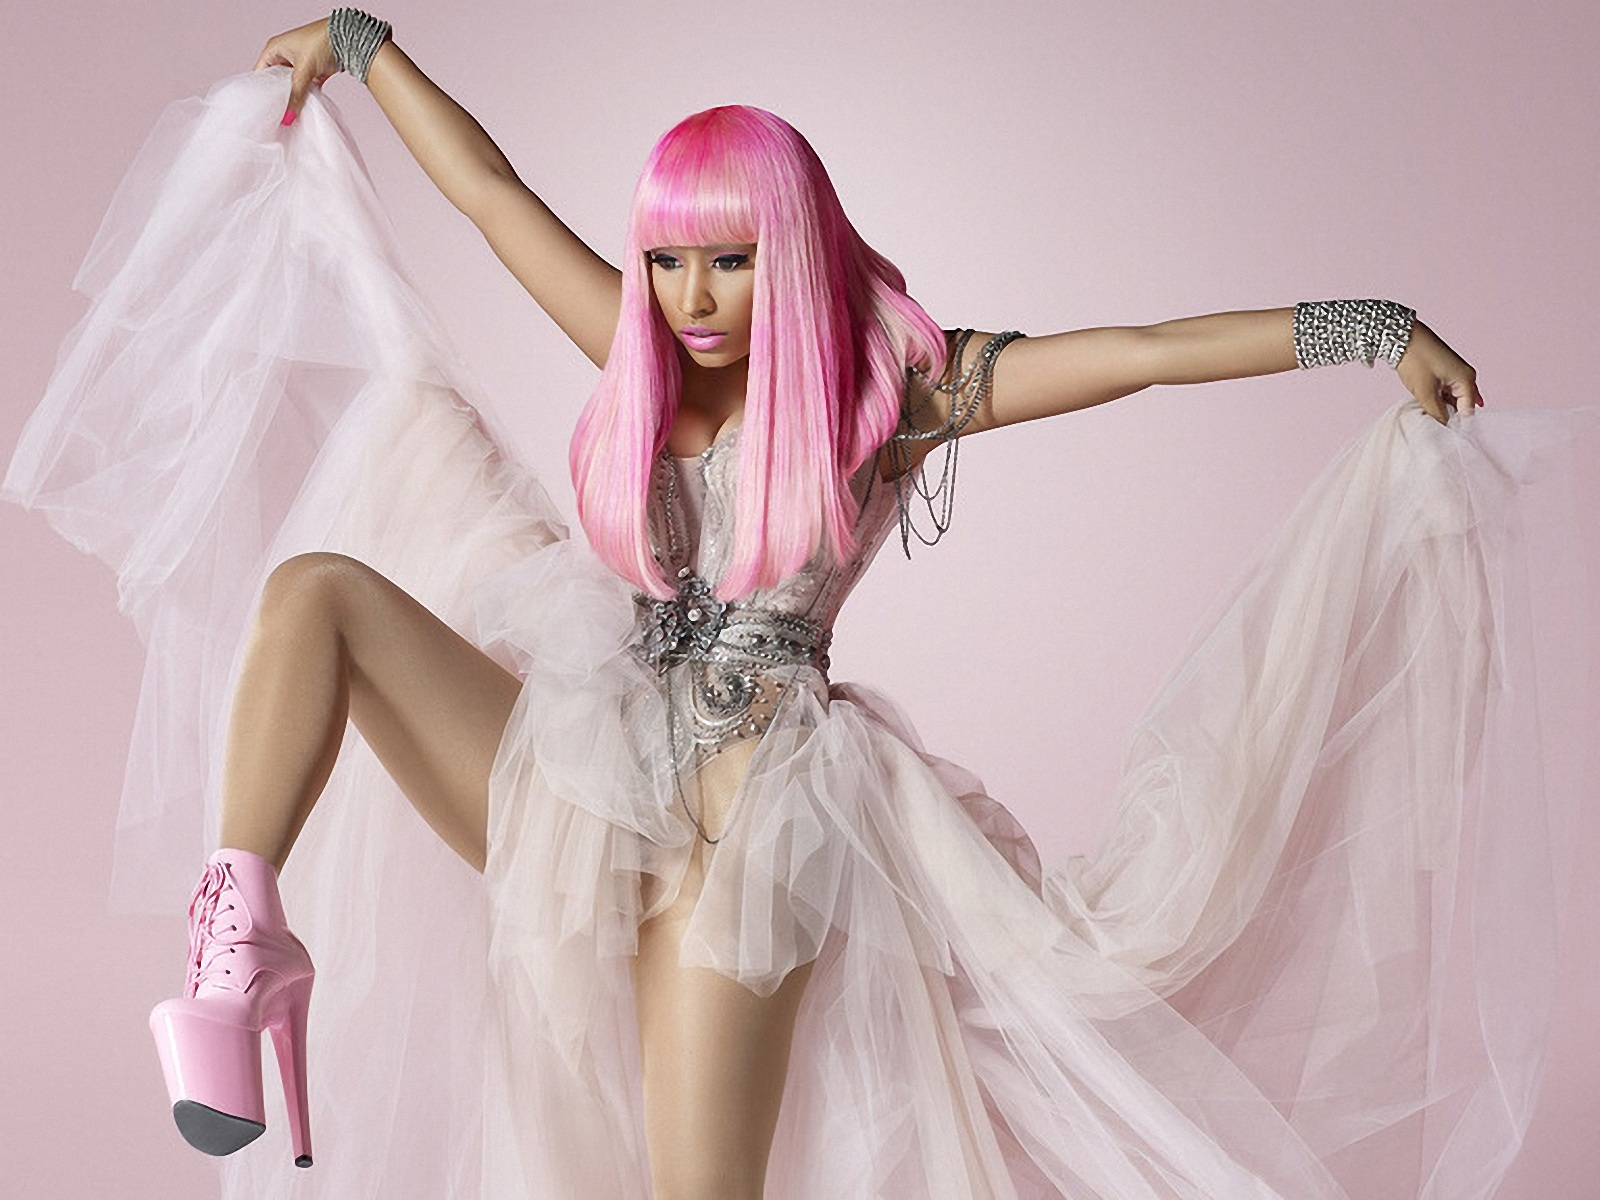 Nicki Minaj Wallpaper 1600x1200 Wallpapers 1600x1200 Wallpapers 1600x1200